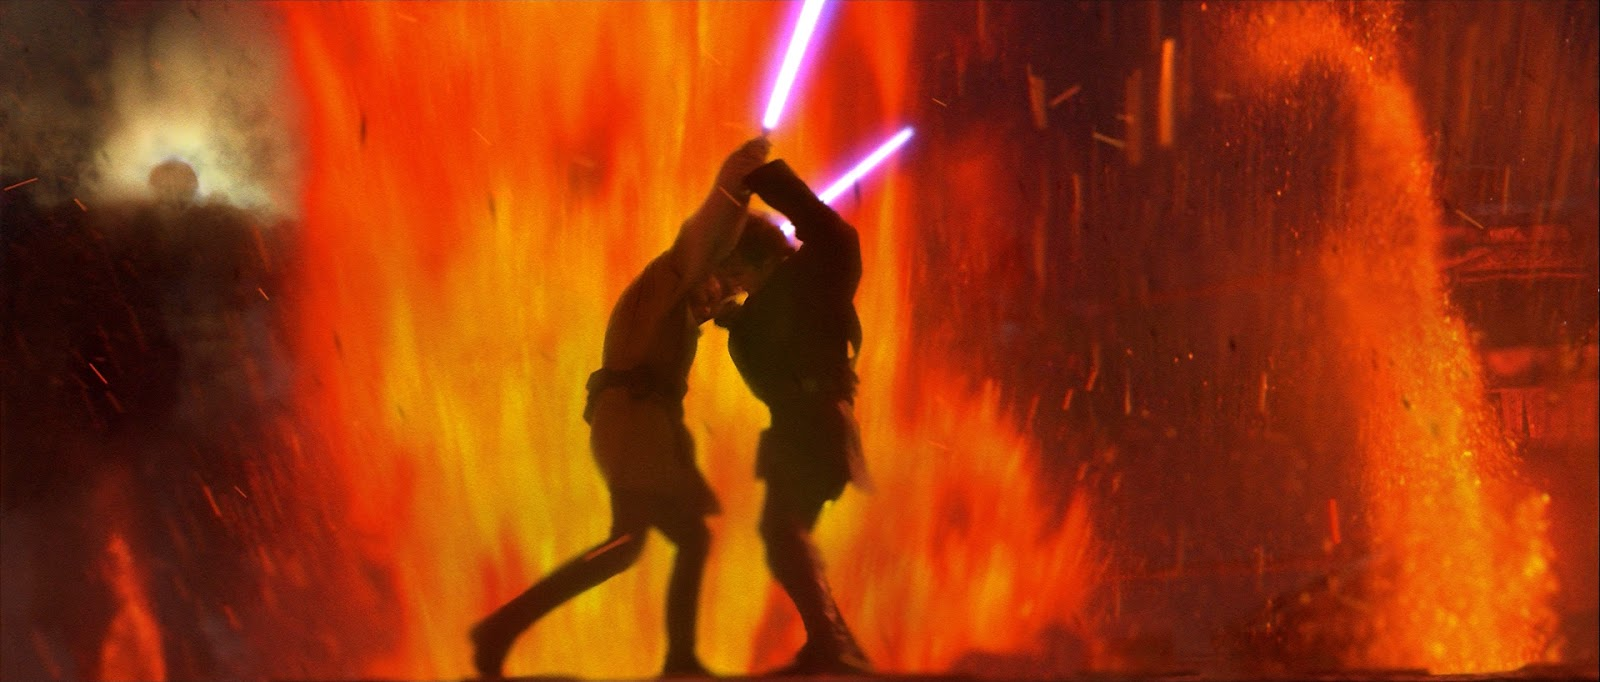 vader fights kenobi revenge of the sith